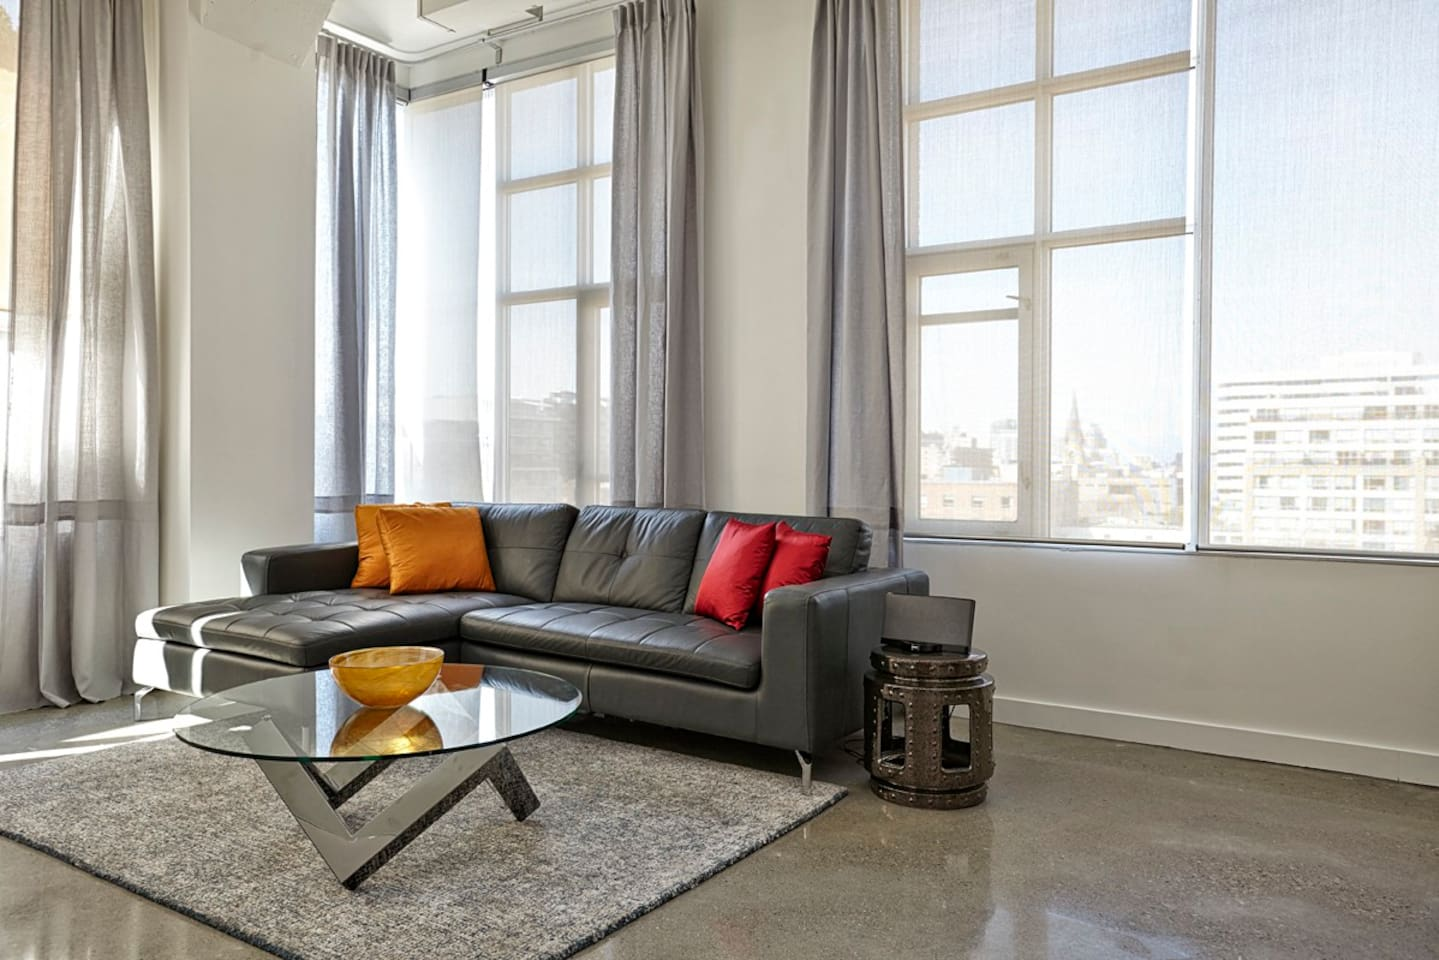 Bright living room with great view and awesome sofa